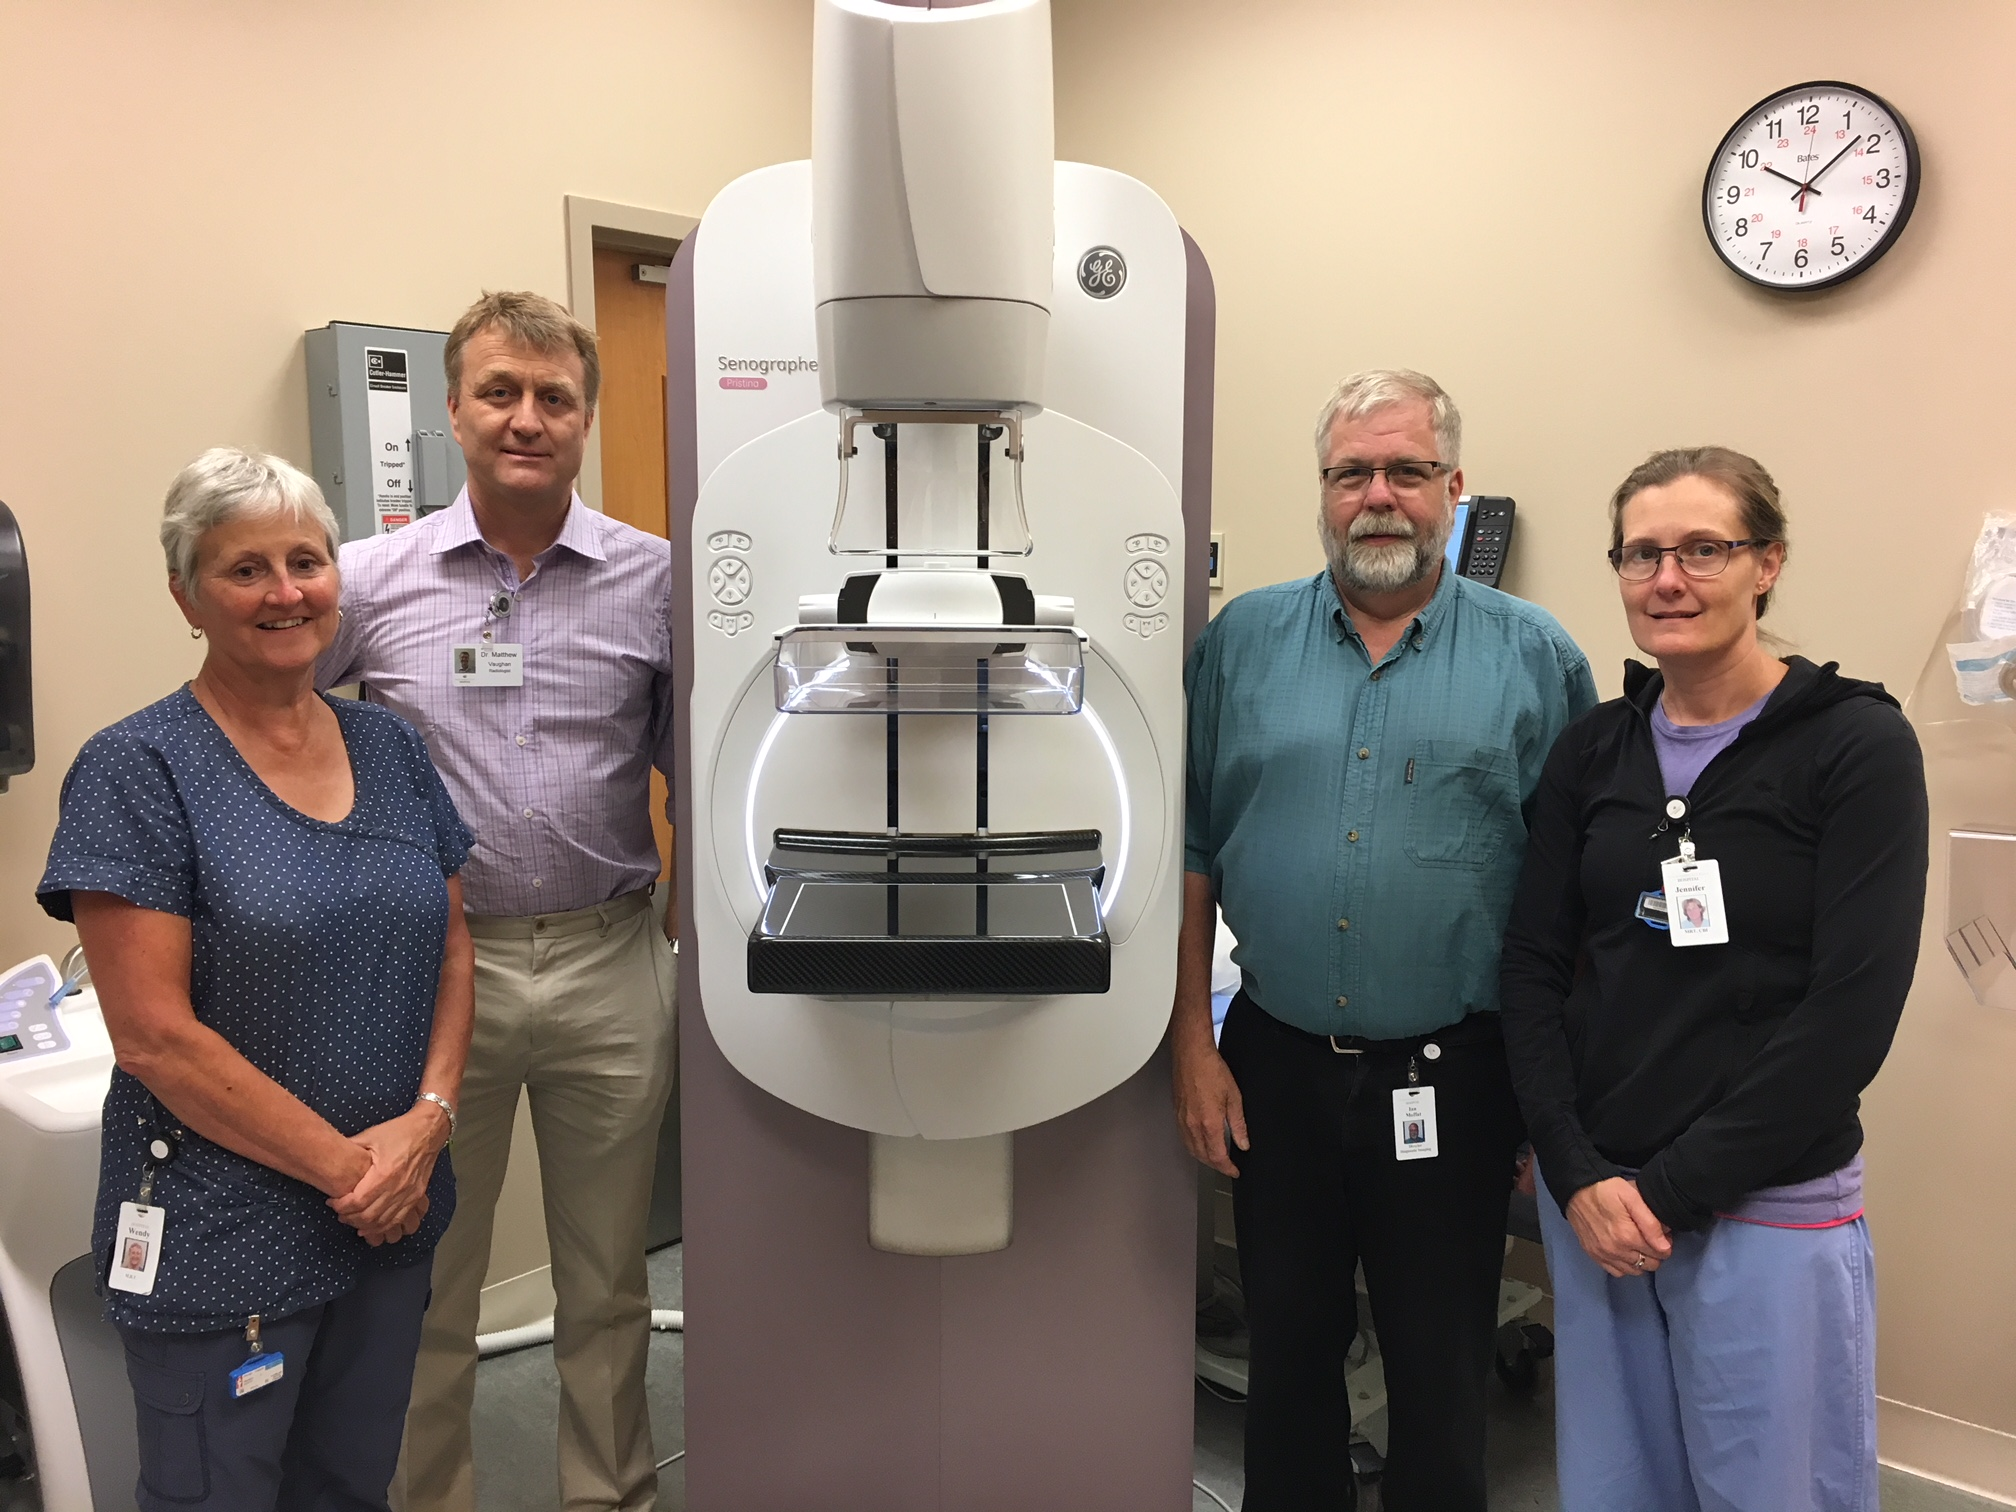 Featured in photo from left: Wendy Scott, Senior Mammography Technologist, Dr. Matthew Vaughan, Chief of Radiology, Ian Moffat, Director of Diagnostic Imaging and Jennifer Fudge, Diagnostic Imaging Technologist.Photo by Robert Washburn